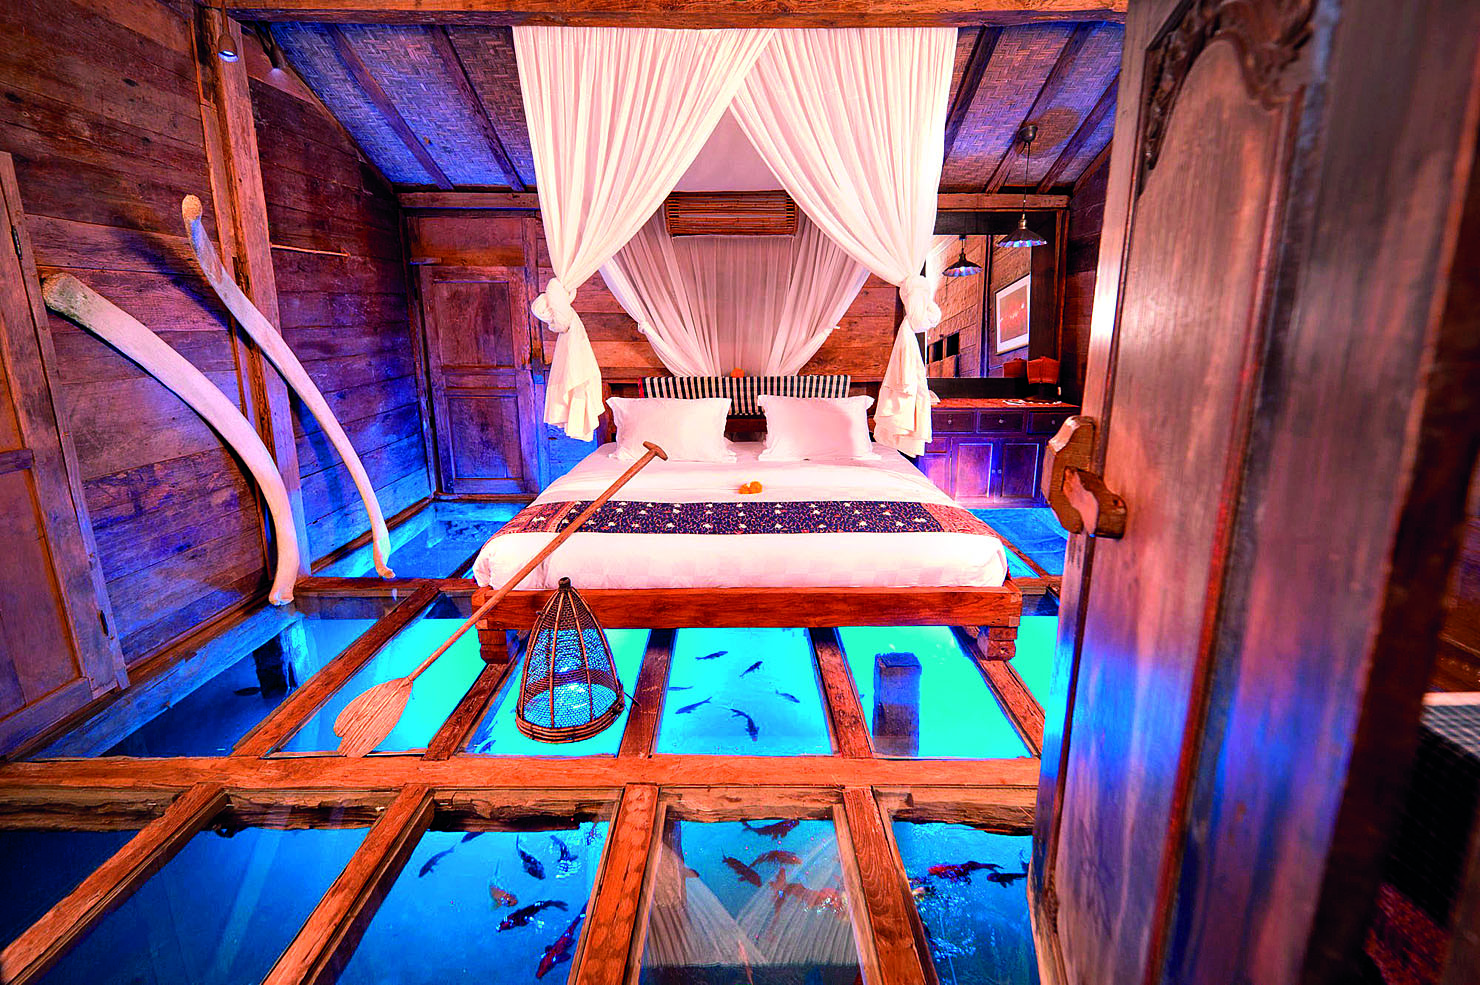 Bali-Udang-House-in-Bali-Situated-above-A-Fresh-Shrimp-Pond-The-Bambu-Indah-Has-A-Tempered-Glass-Floor-Aquarium-Bedroom